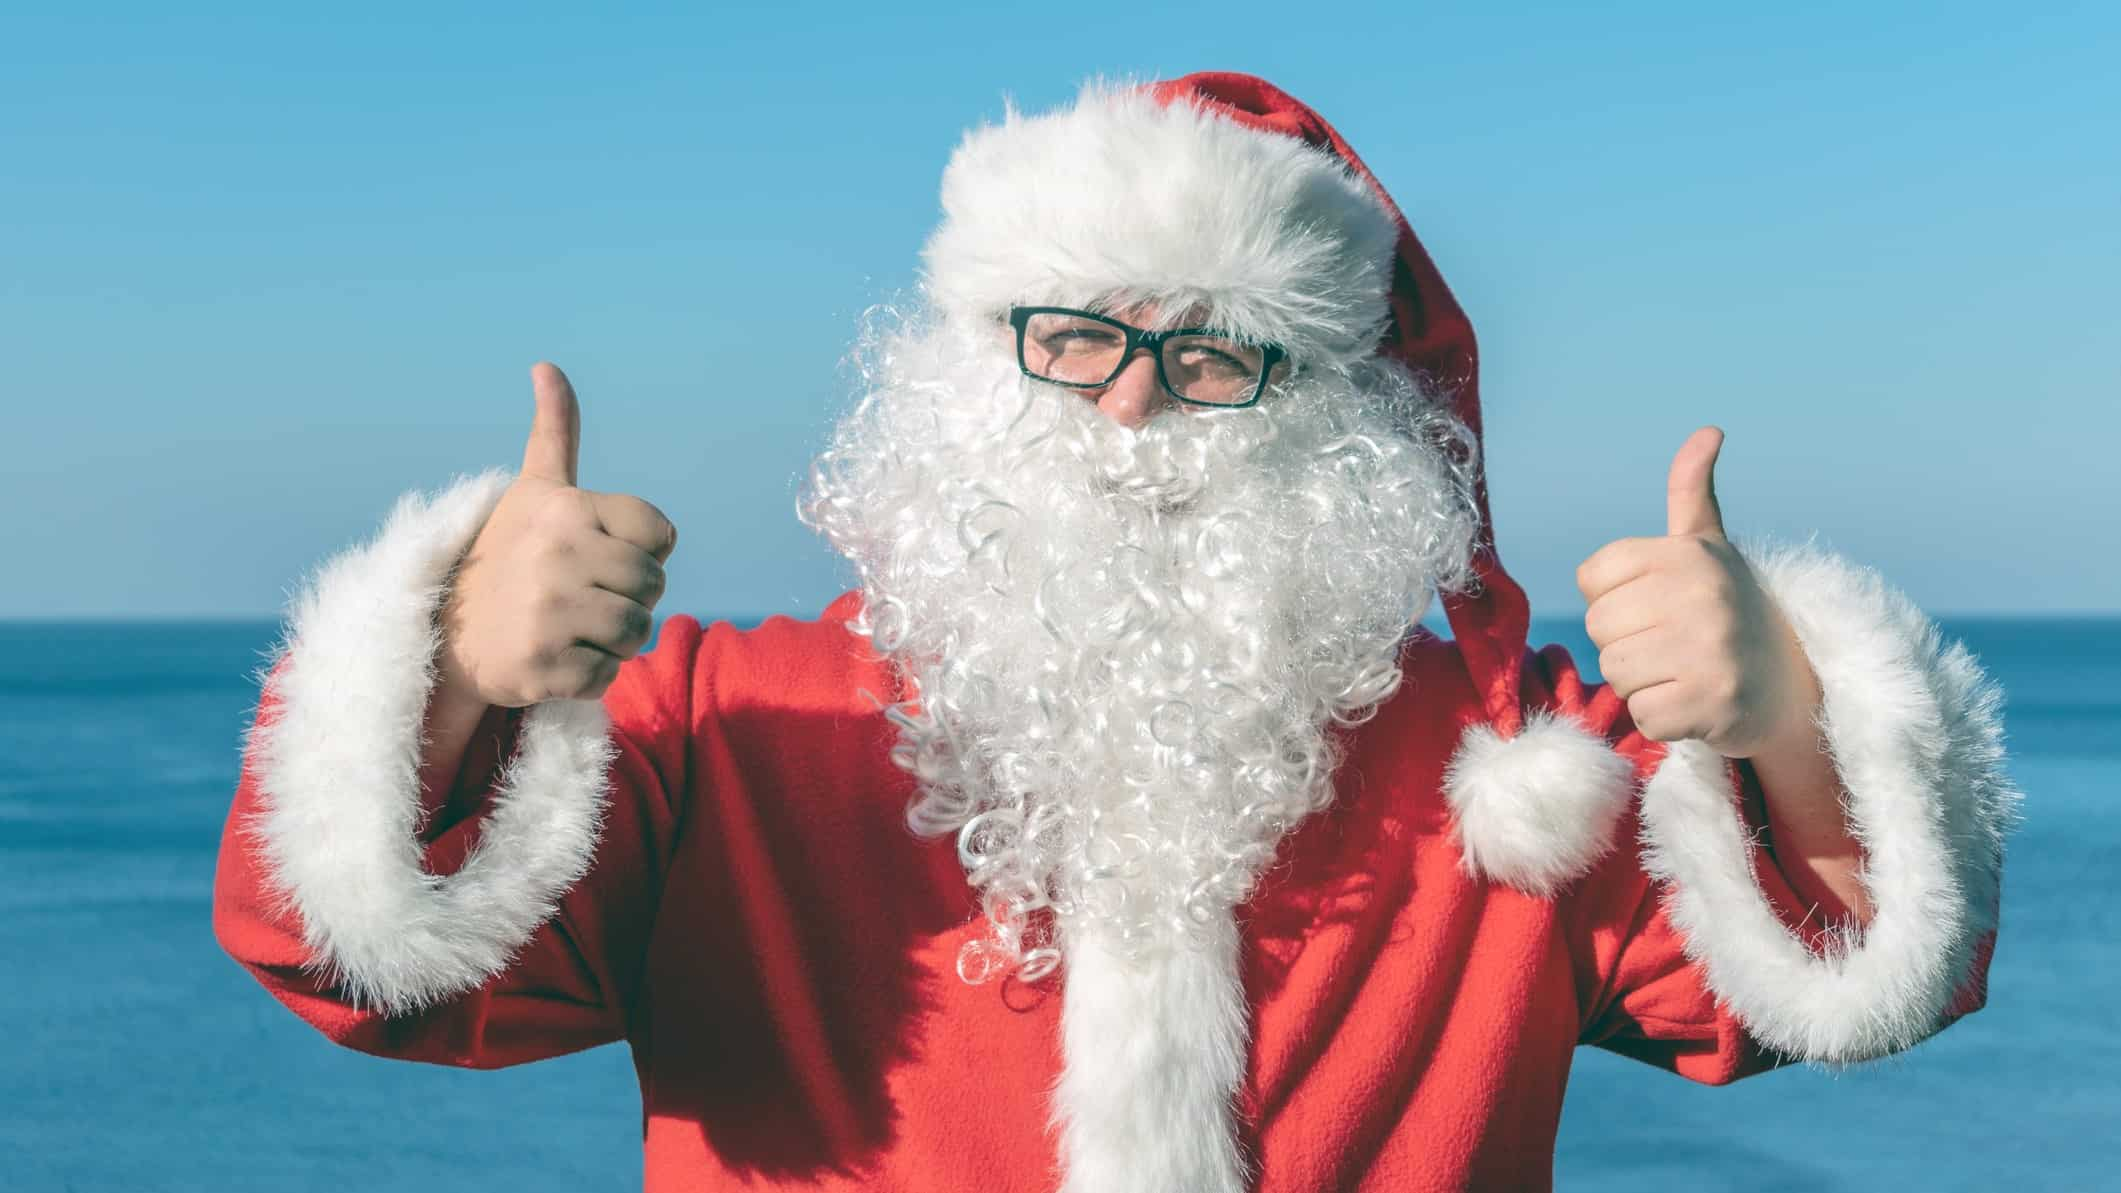 Santa at the beach gives a big thumbs up, indicating positive sentiment for the year ahead for ASX share prices